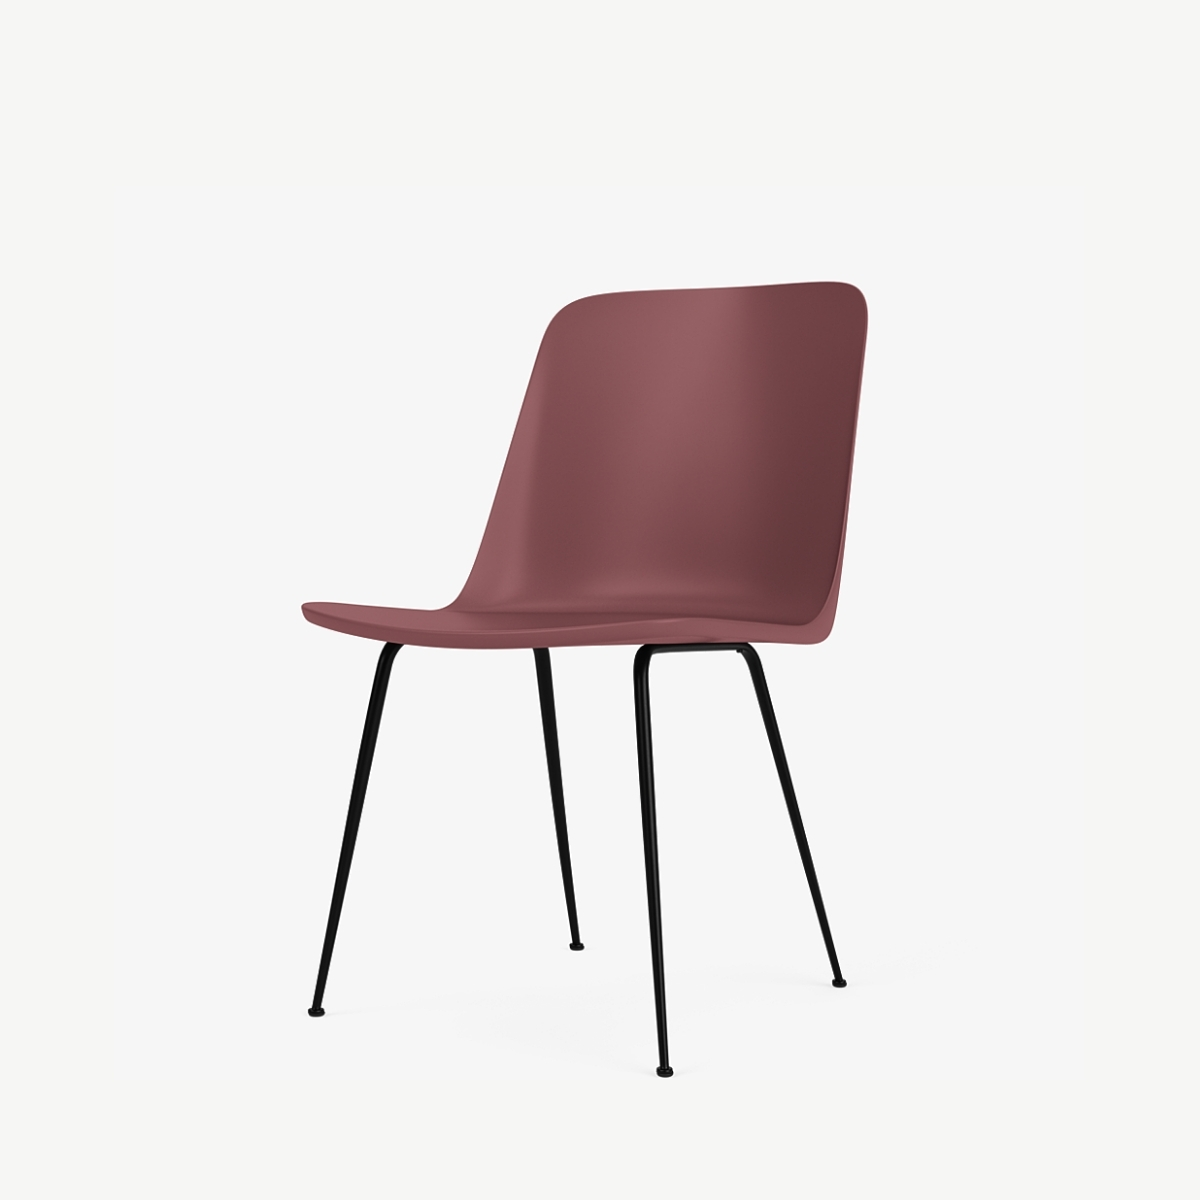 &Tradition   Rely HW6 chair - Bolighuset Werenberg